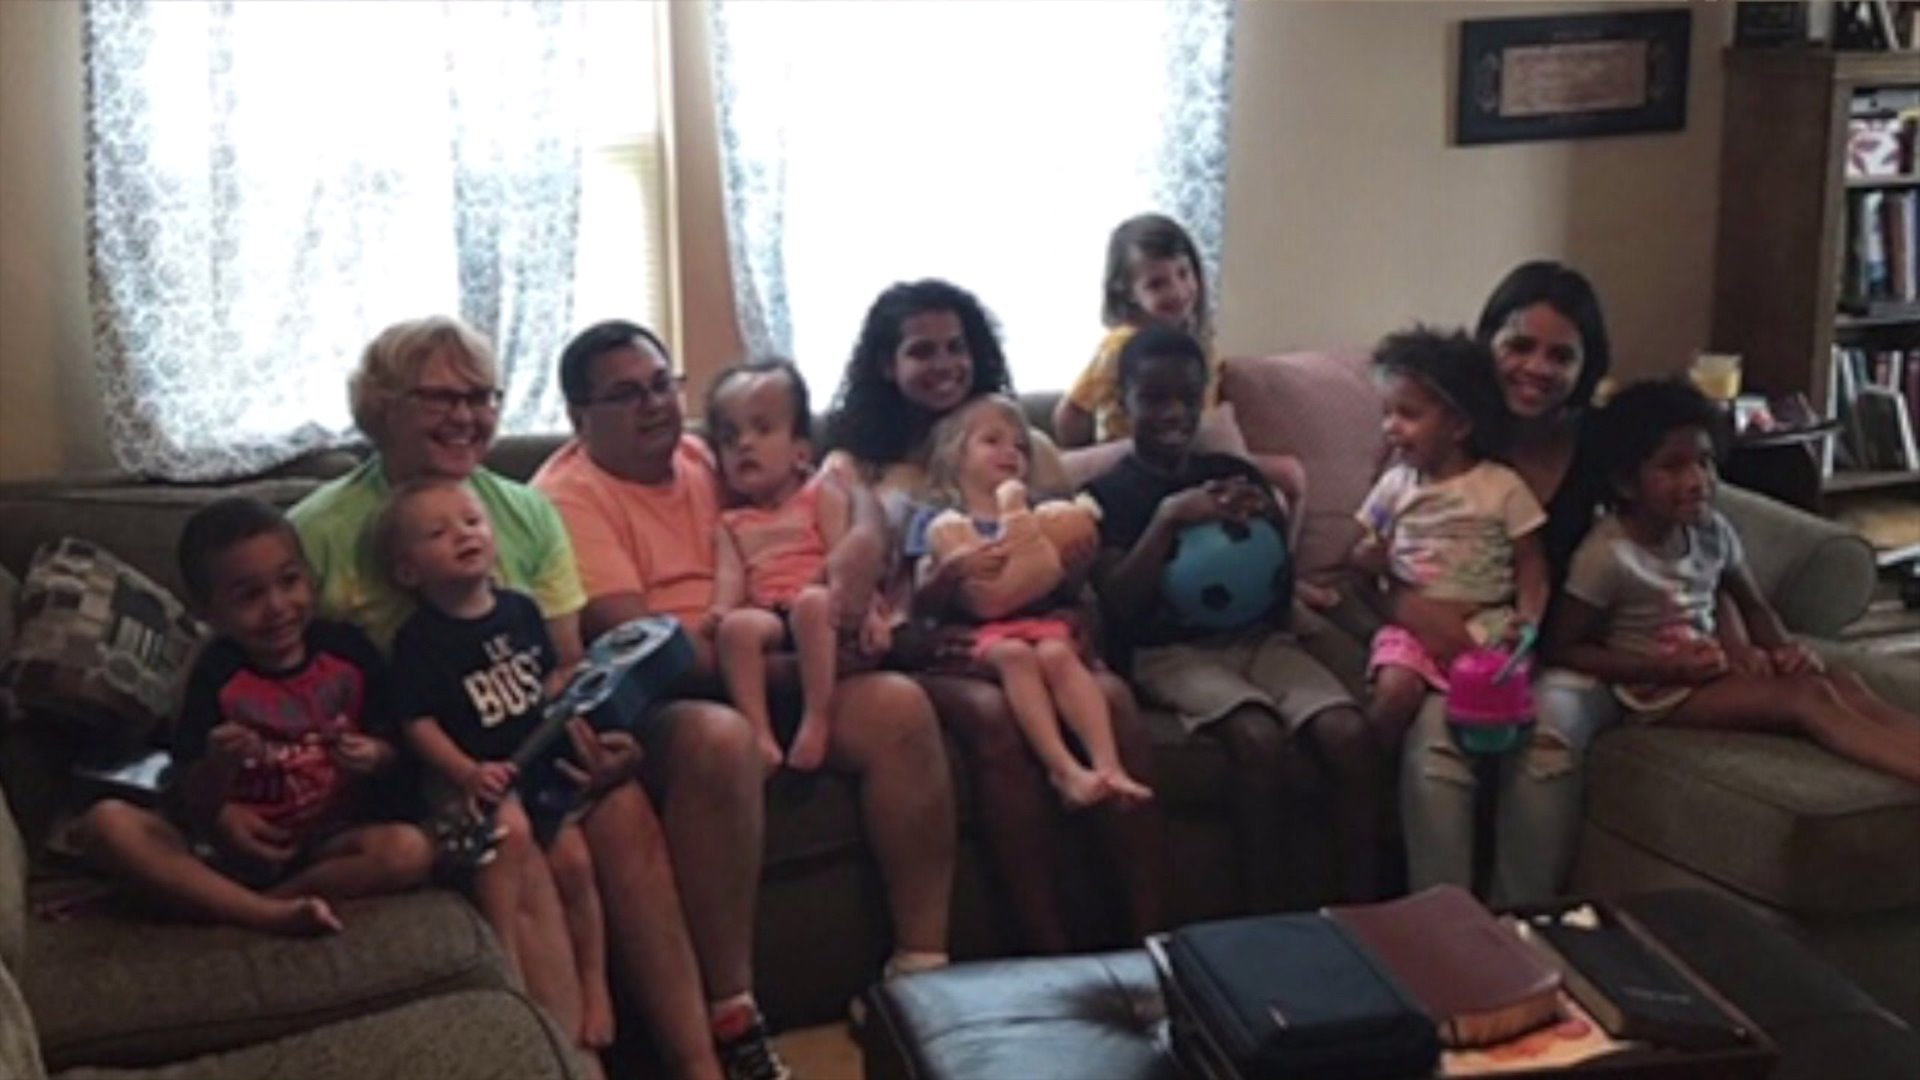 North Carolina couple creates big, happy family with 7 adoptive children.